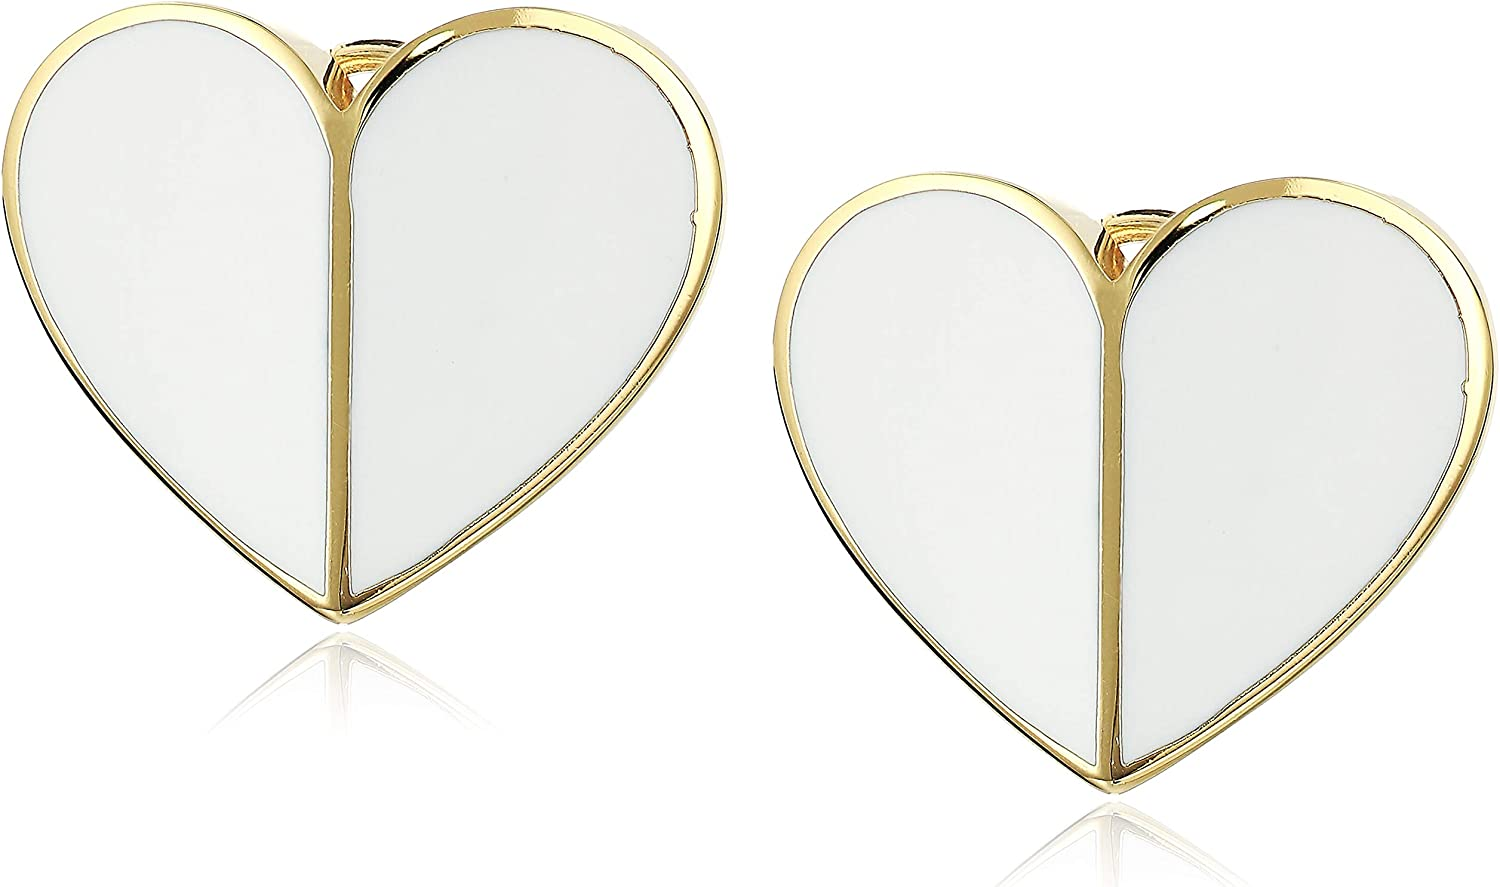 Kate Spade New York Super intense SALE Heritage Heart Special sale item Statement Studs Earring